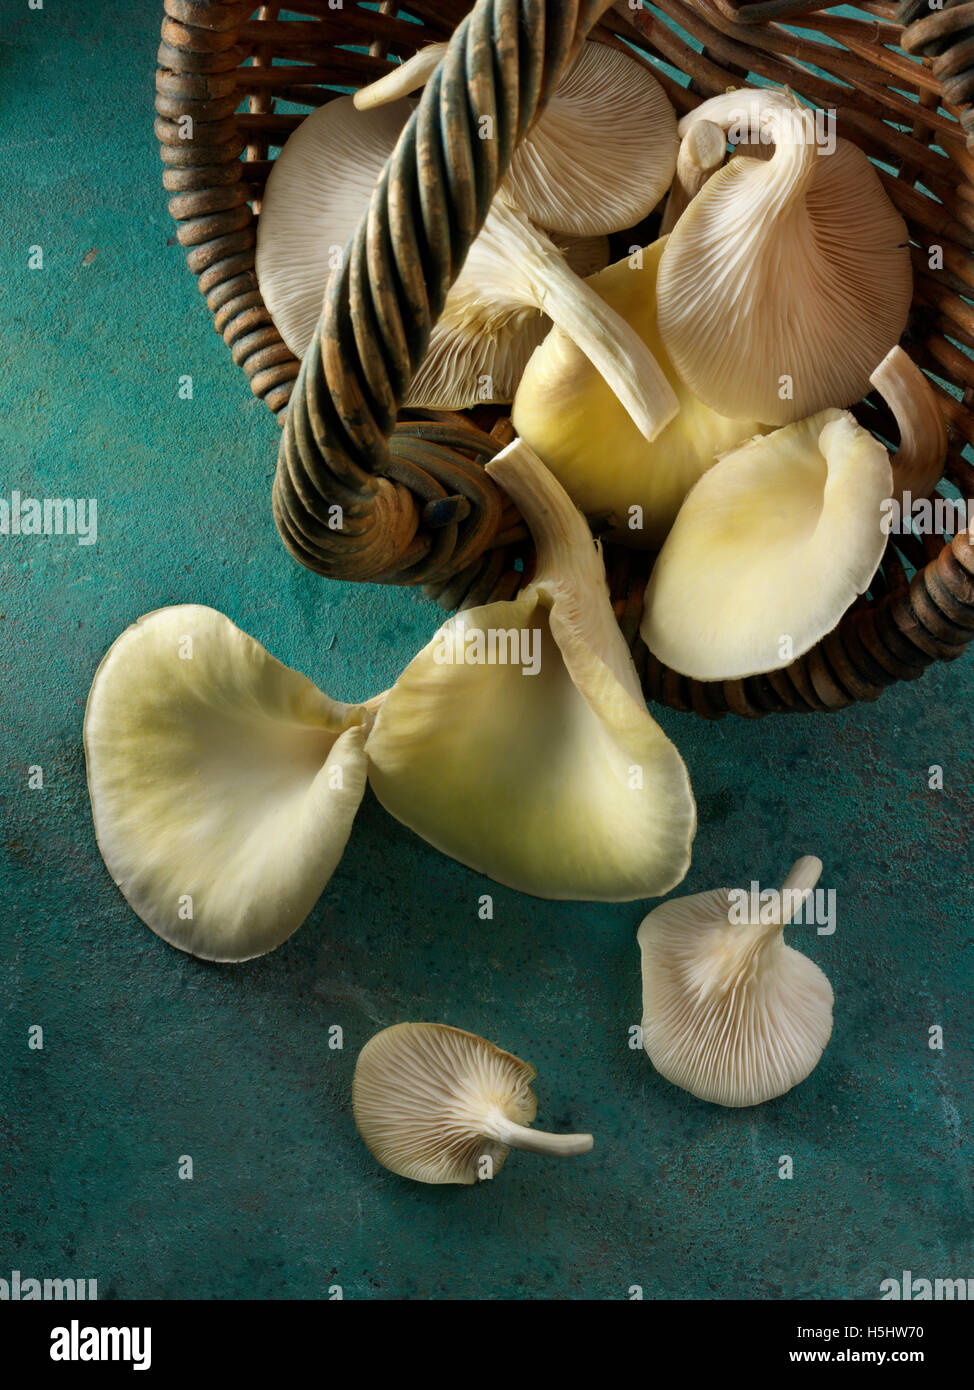 Fresh picked basket of edible yellow or golden oyster mushrooms (Pleurotus citrinopileatus) - Stock Image